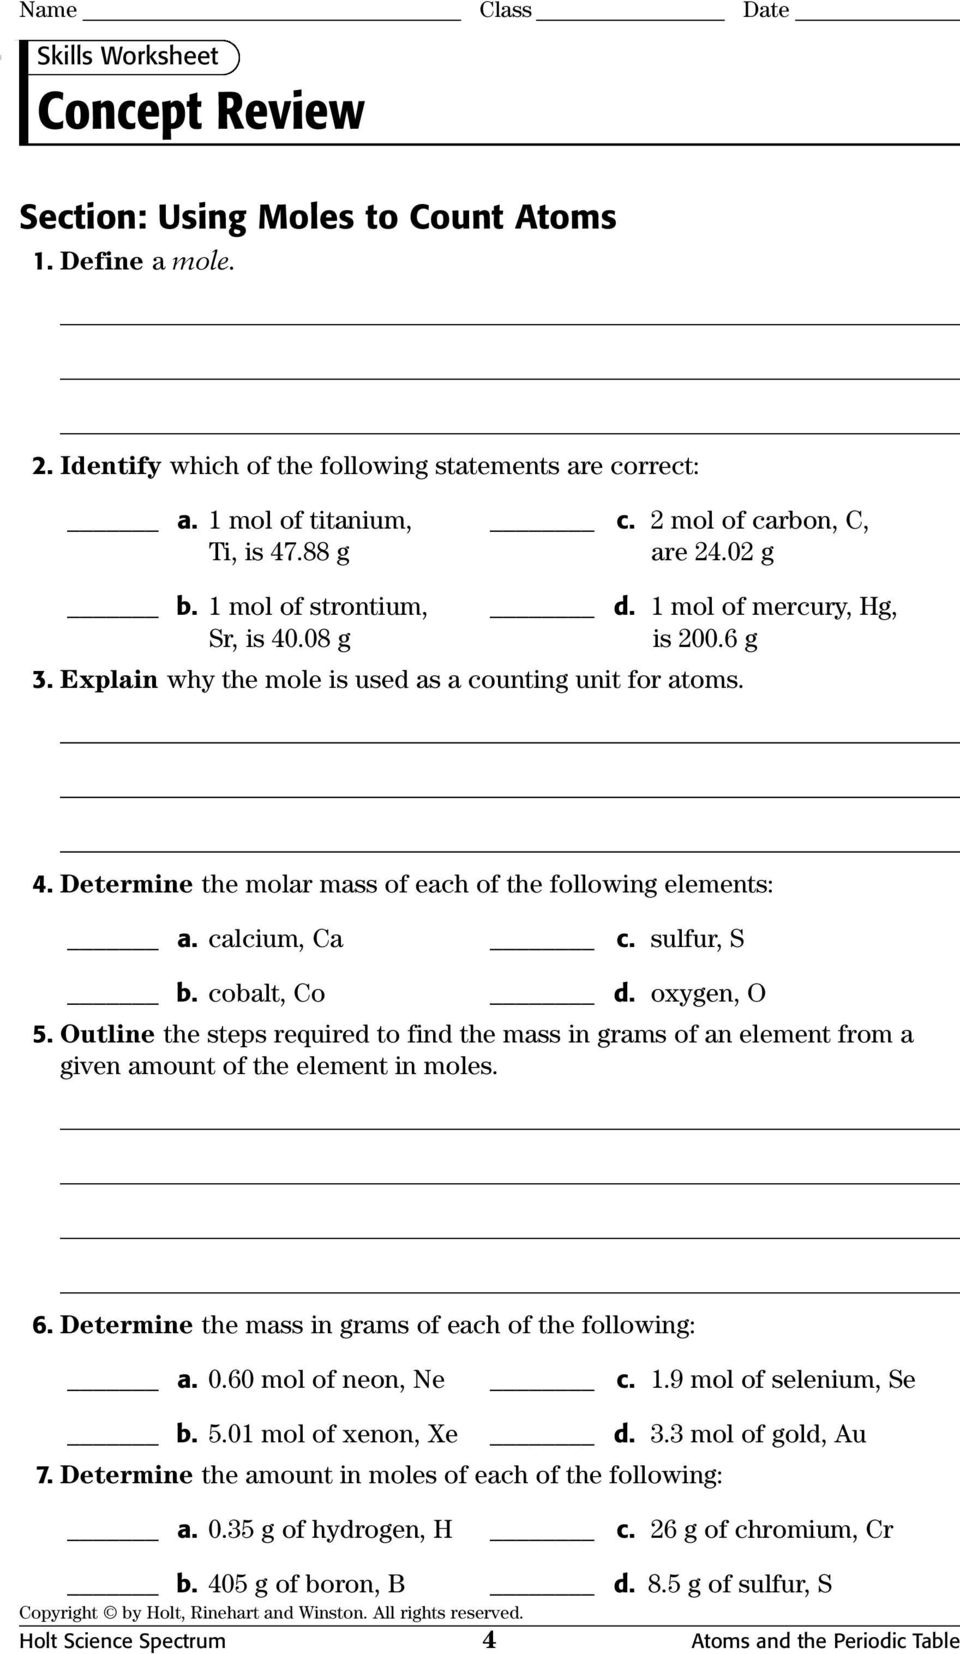 database concepts unit 3 true false questions answers The final exam will take place during week/unit 9 (uopeople time)  week 8:  unit 8 - additional trigonometric concepts  peer assess unit 3 written  assignment read the learning guide and reading assignments  a  substantive response is one that fully answers the question that has been posed  by the instructor.